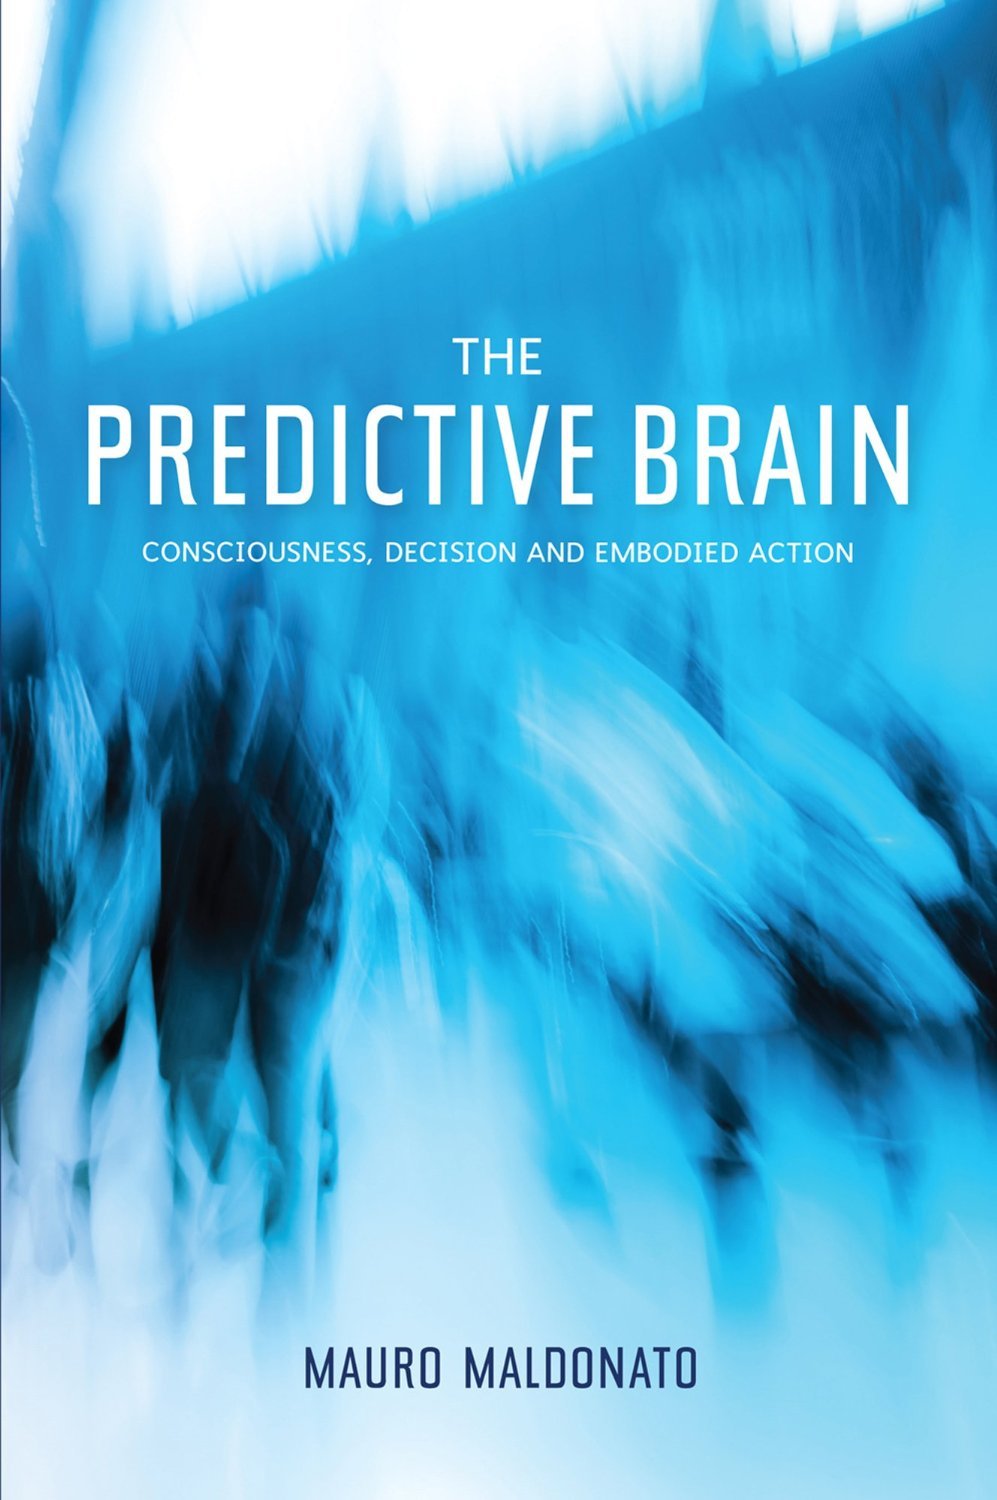 THE PREDICTIVE BRAIN